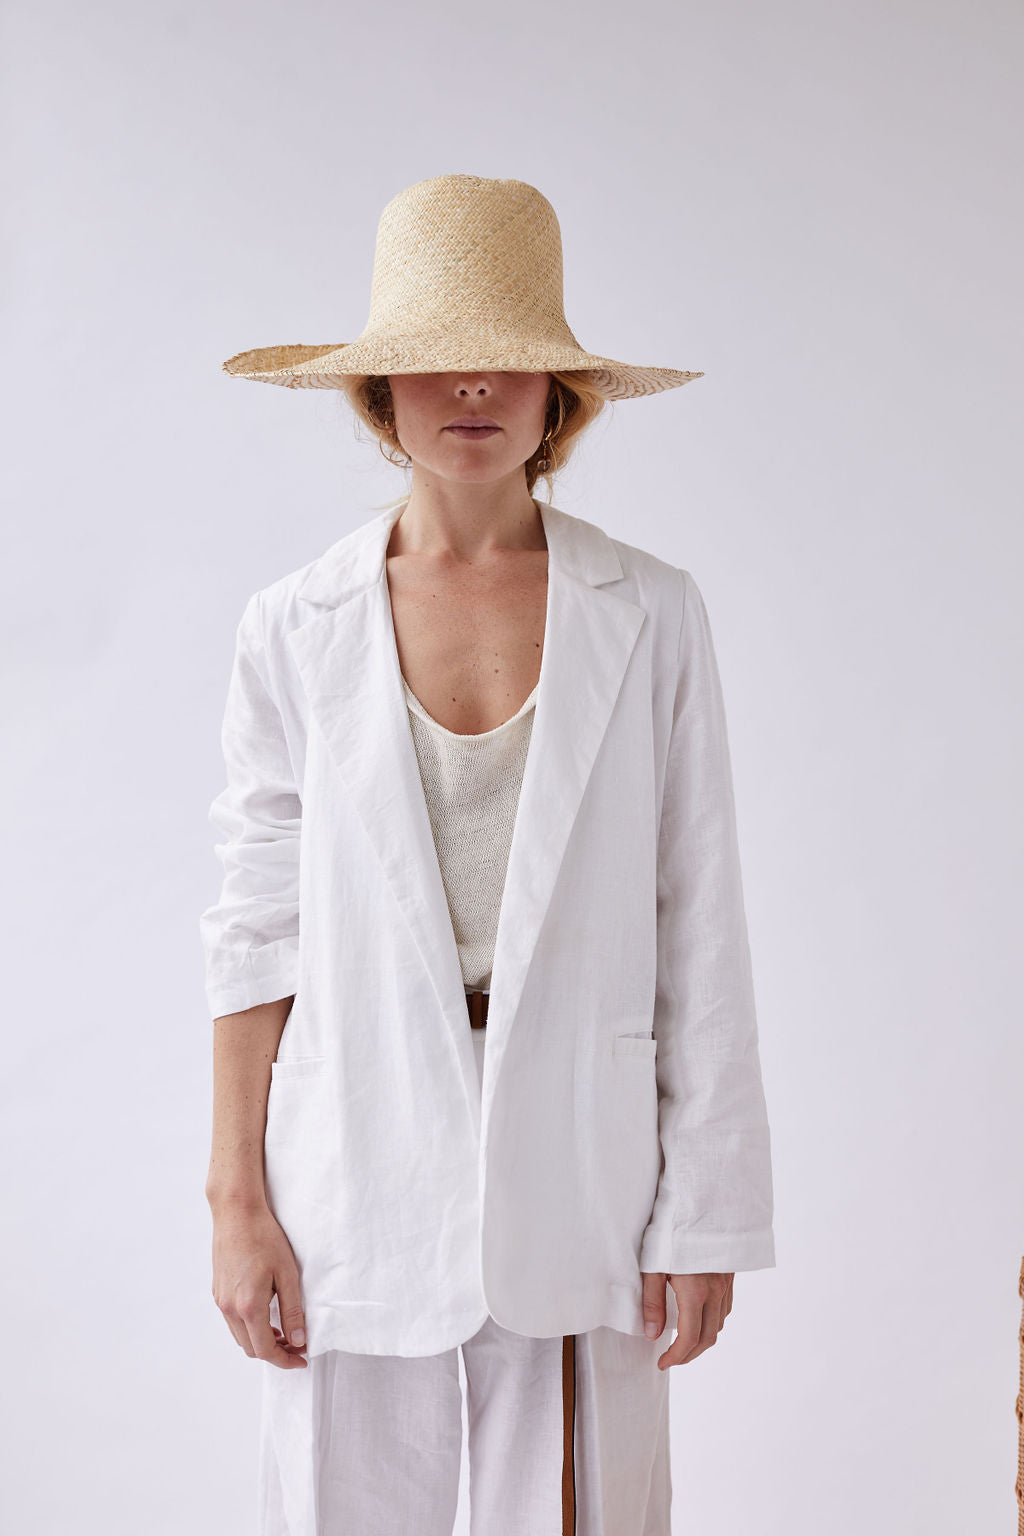 The Tailored Linen Blazer - seconds